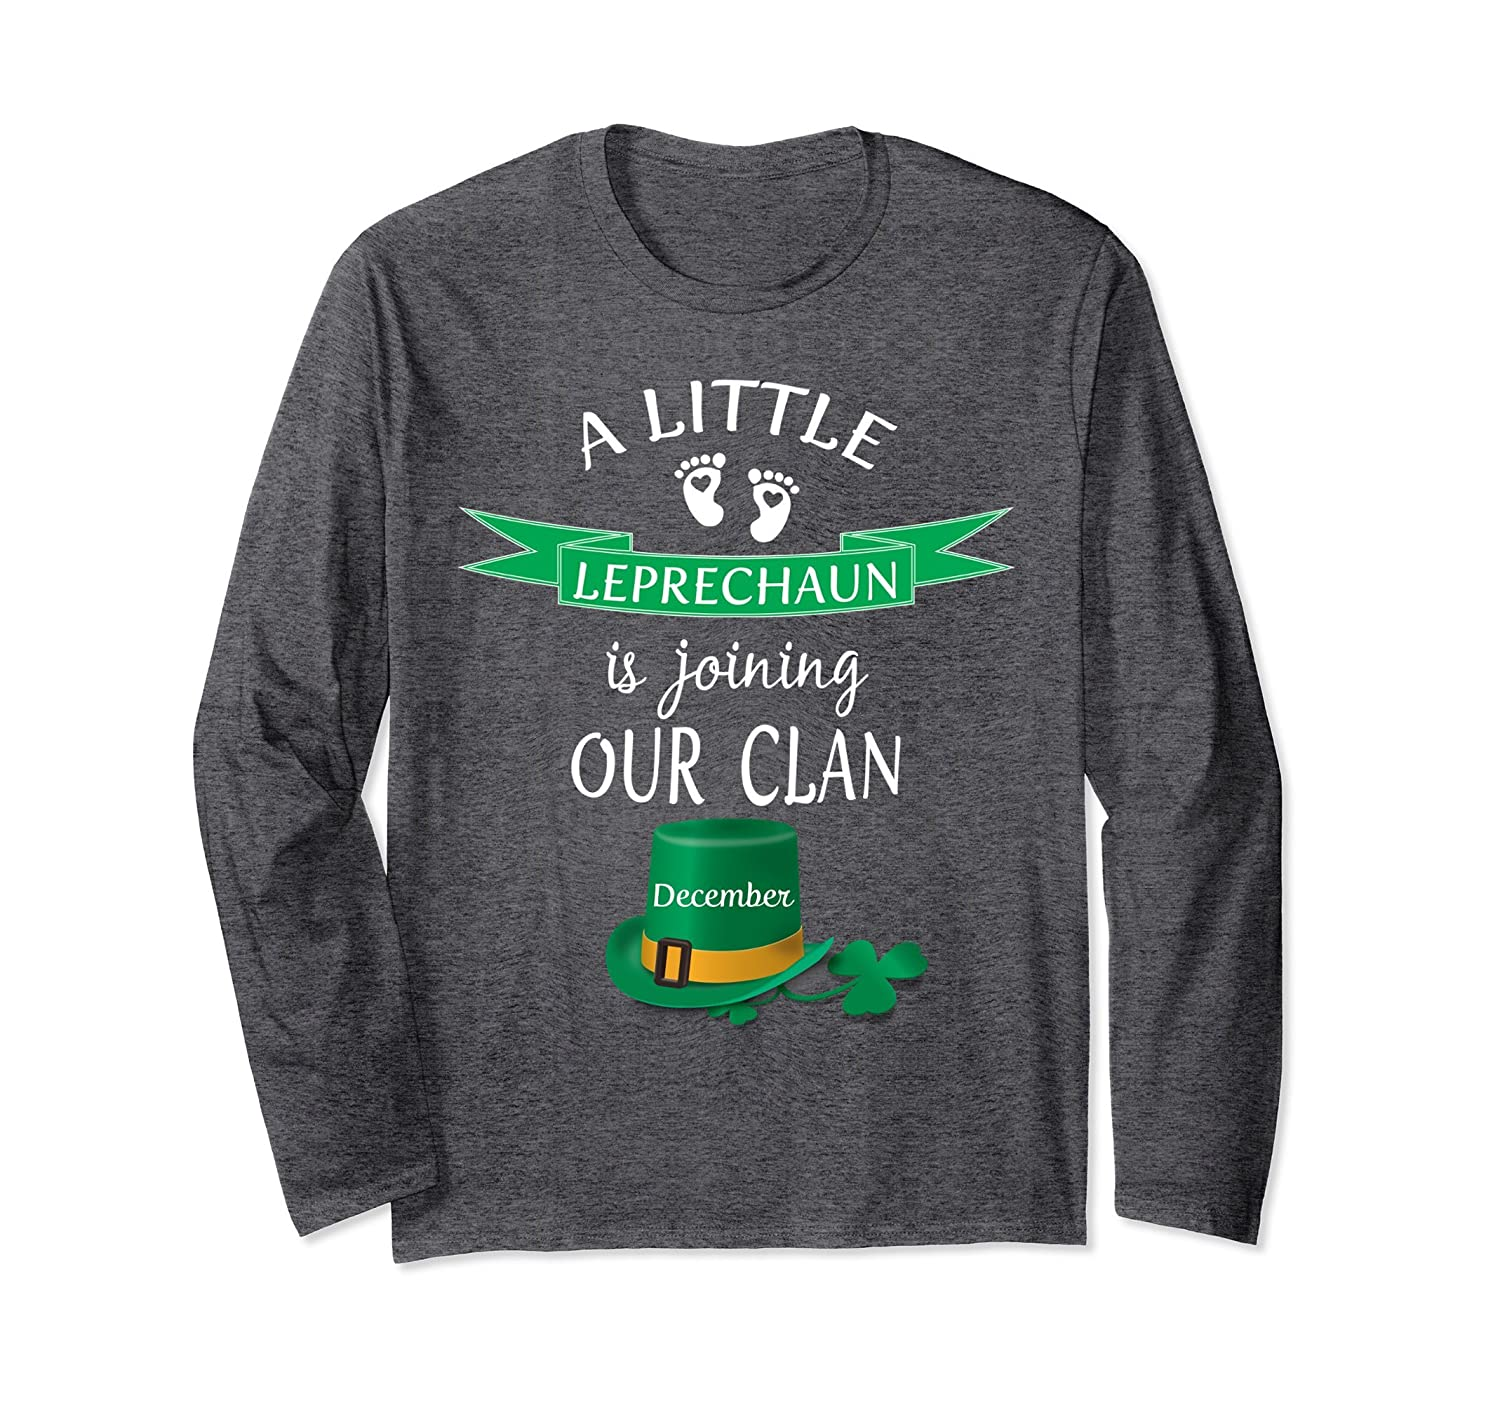 d9c09dbf St. Patrick's Day Pregnancy Announcement Shirt December-ah my shirt one gift